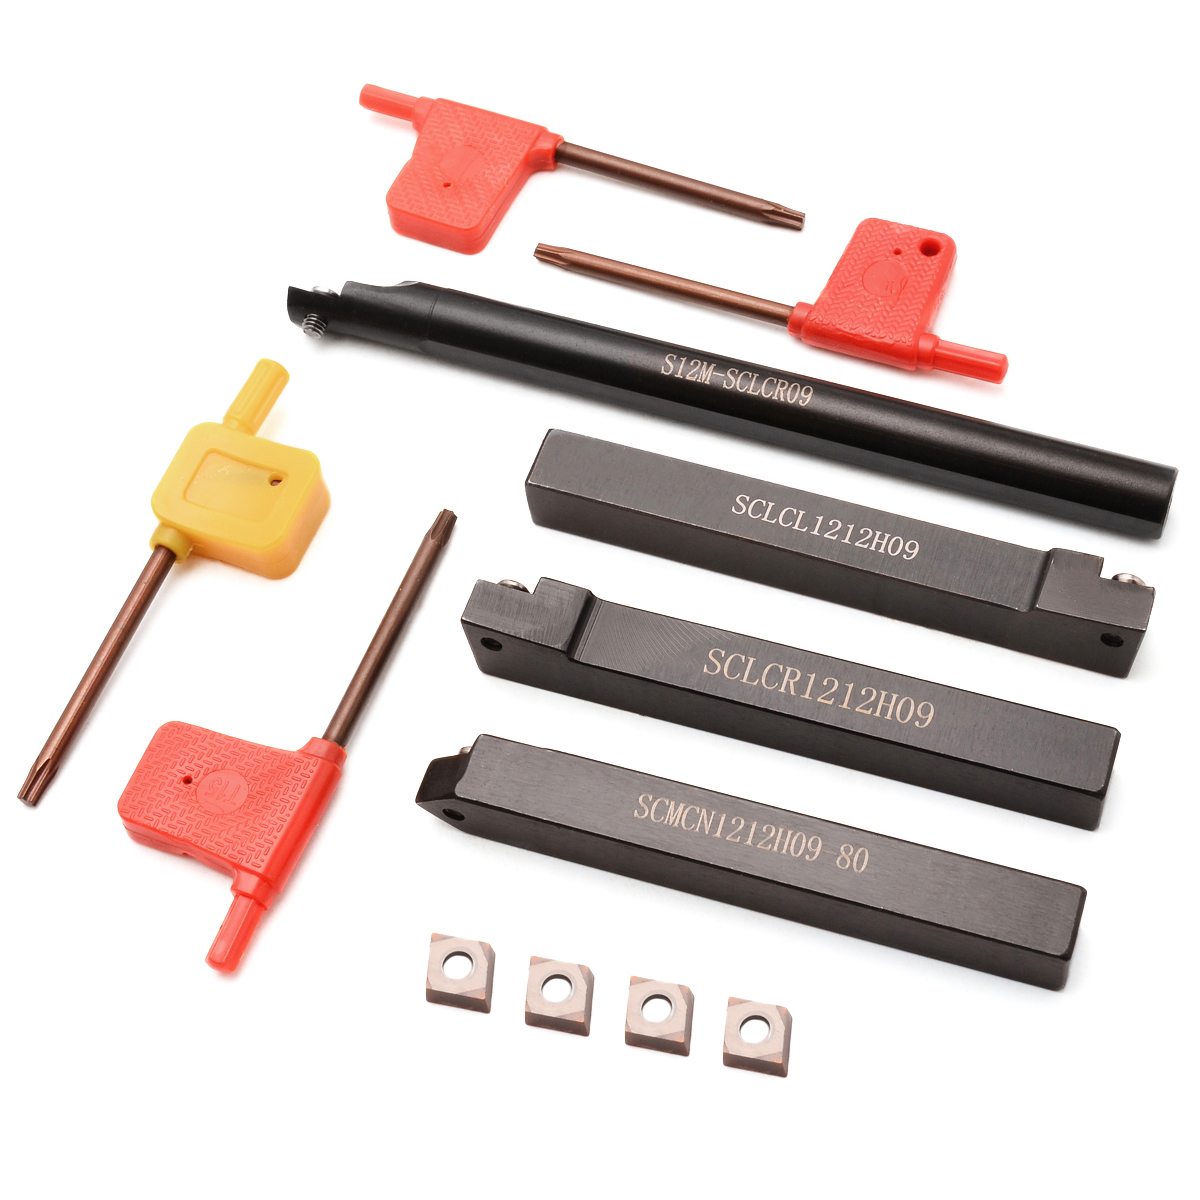 4pcs CCMT 09T3 Carbide Inserts Blades + 4pcs Straight Shank Lathe Index Boring Bar Turning Tool Holder + 4pcs Wrenches 4pcs 12mm boring bar tool holder 10pcs dcmt070204 carbide insert with 4pcs wrench mayitr for lathe turning tools